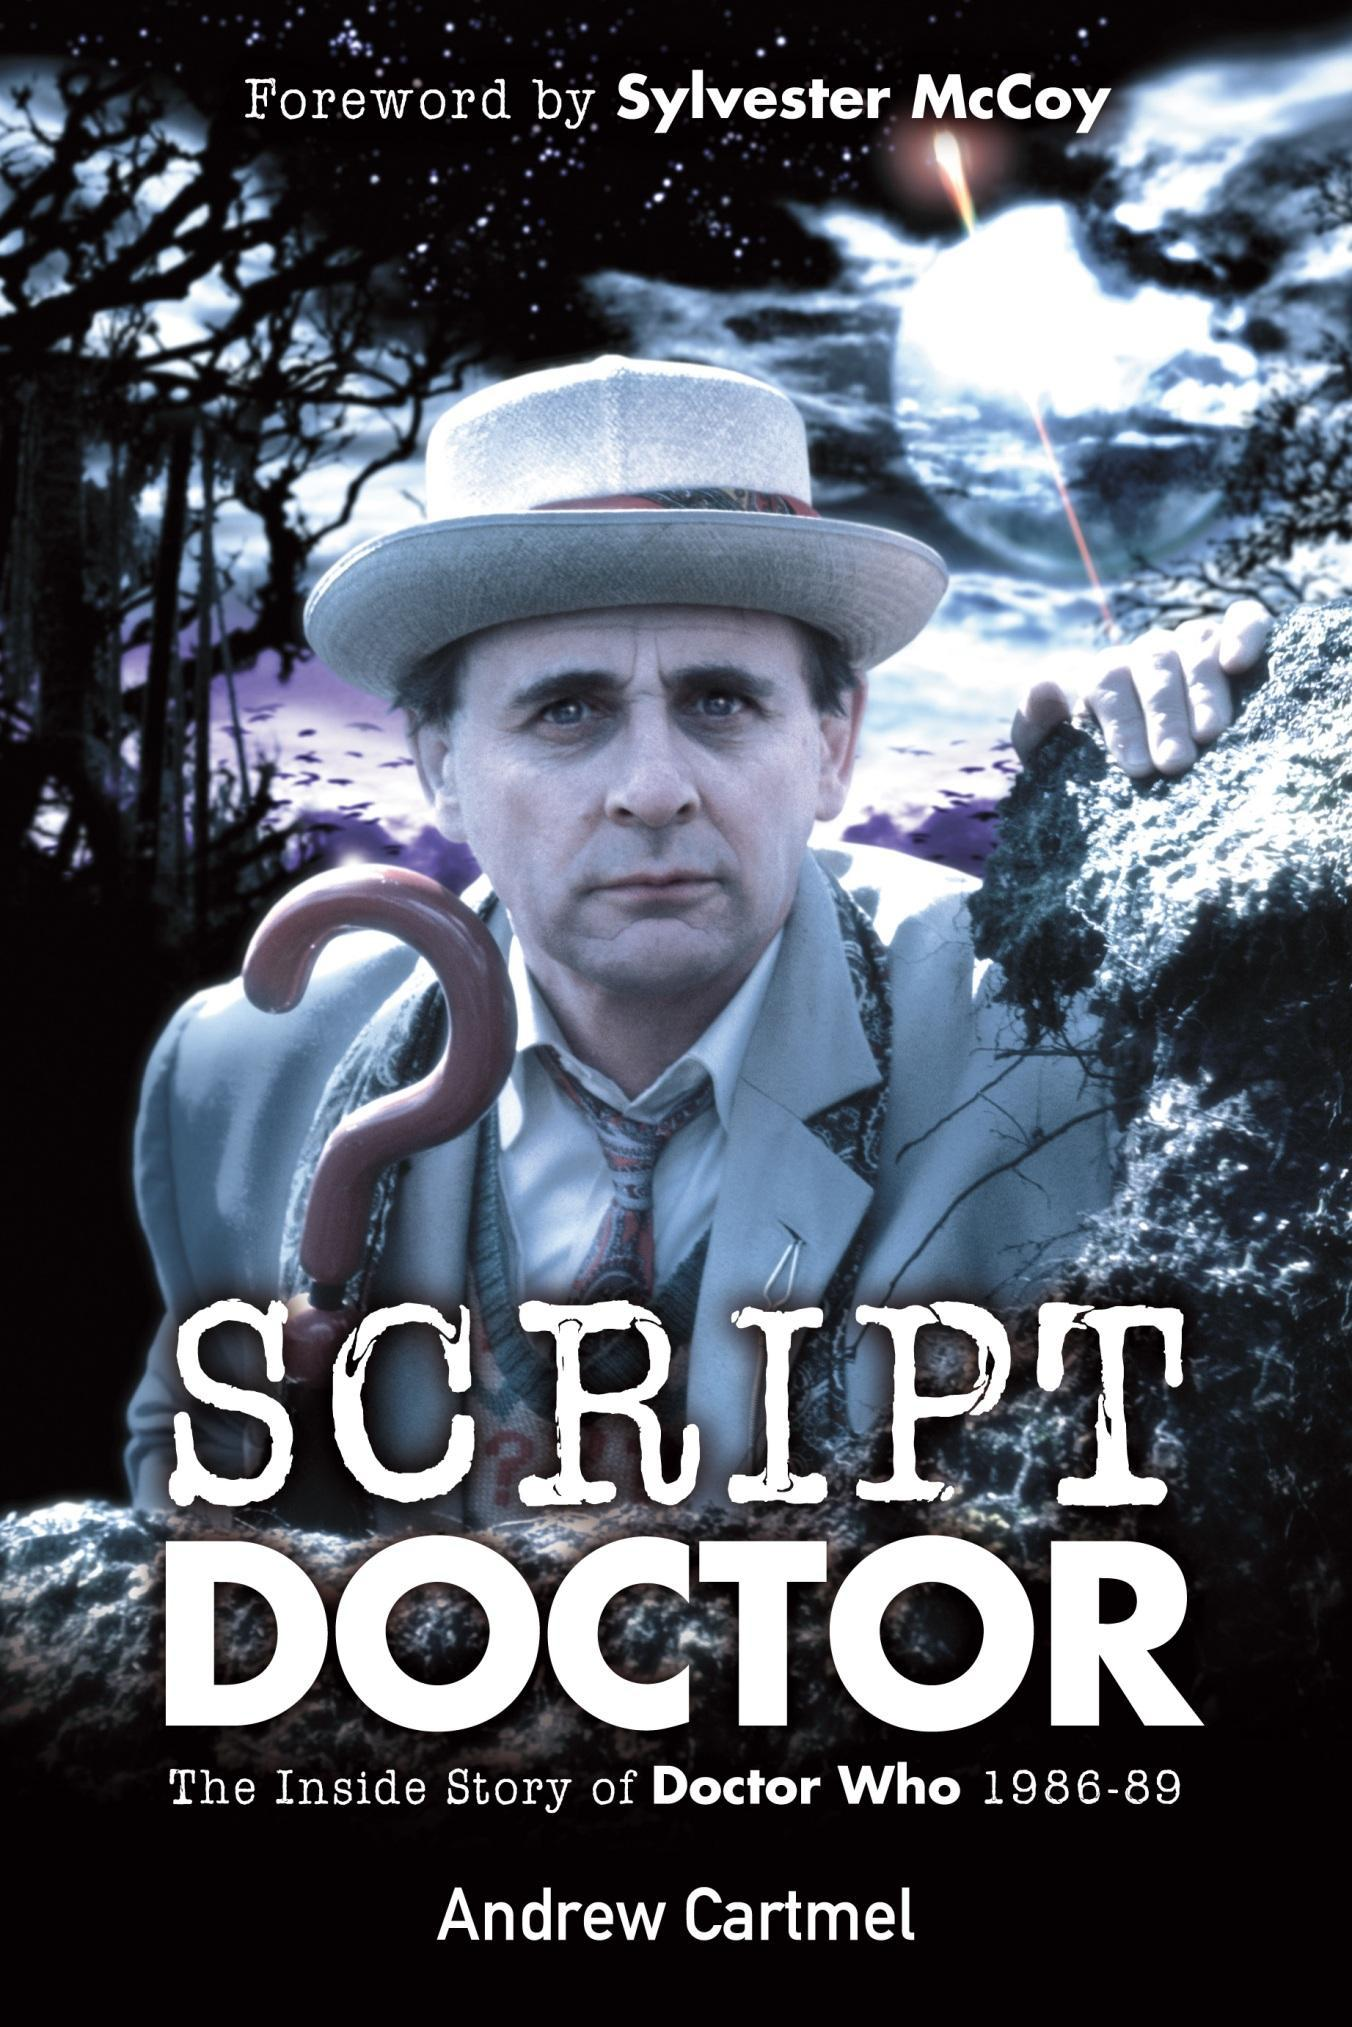 Script Doctor, by Andrew Cartmel (2013 edition) (Credit: Miwk)